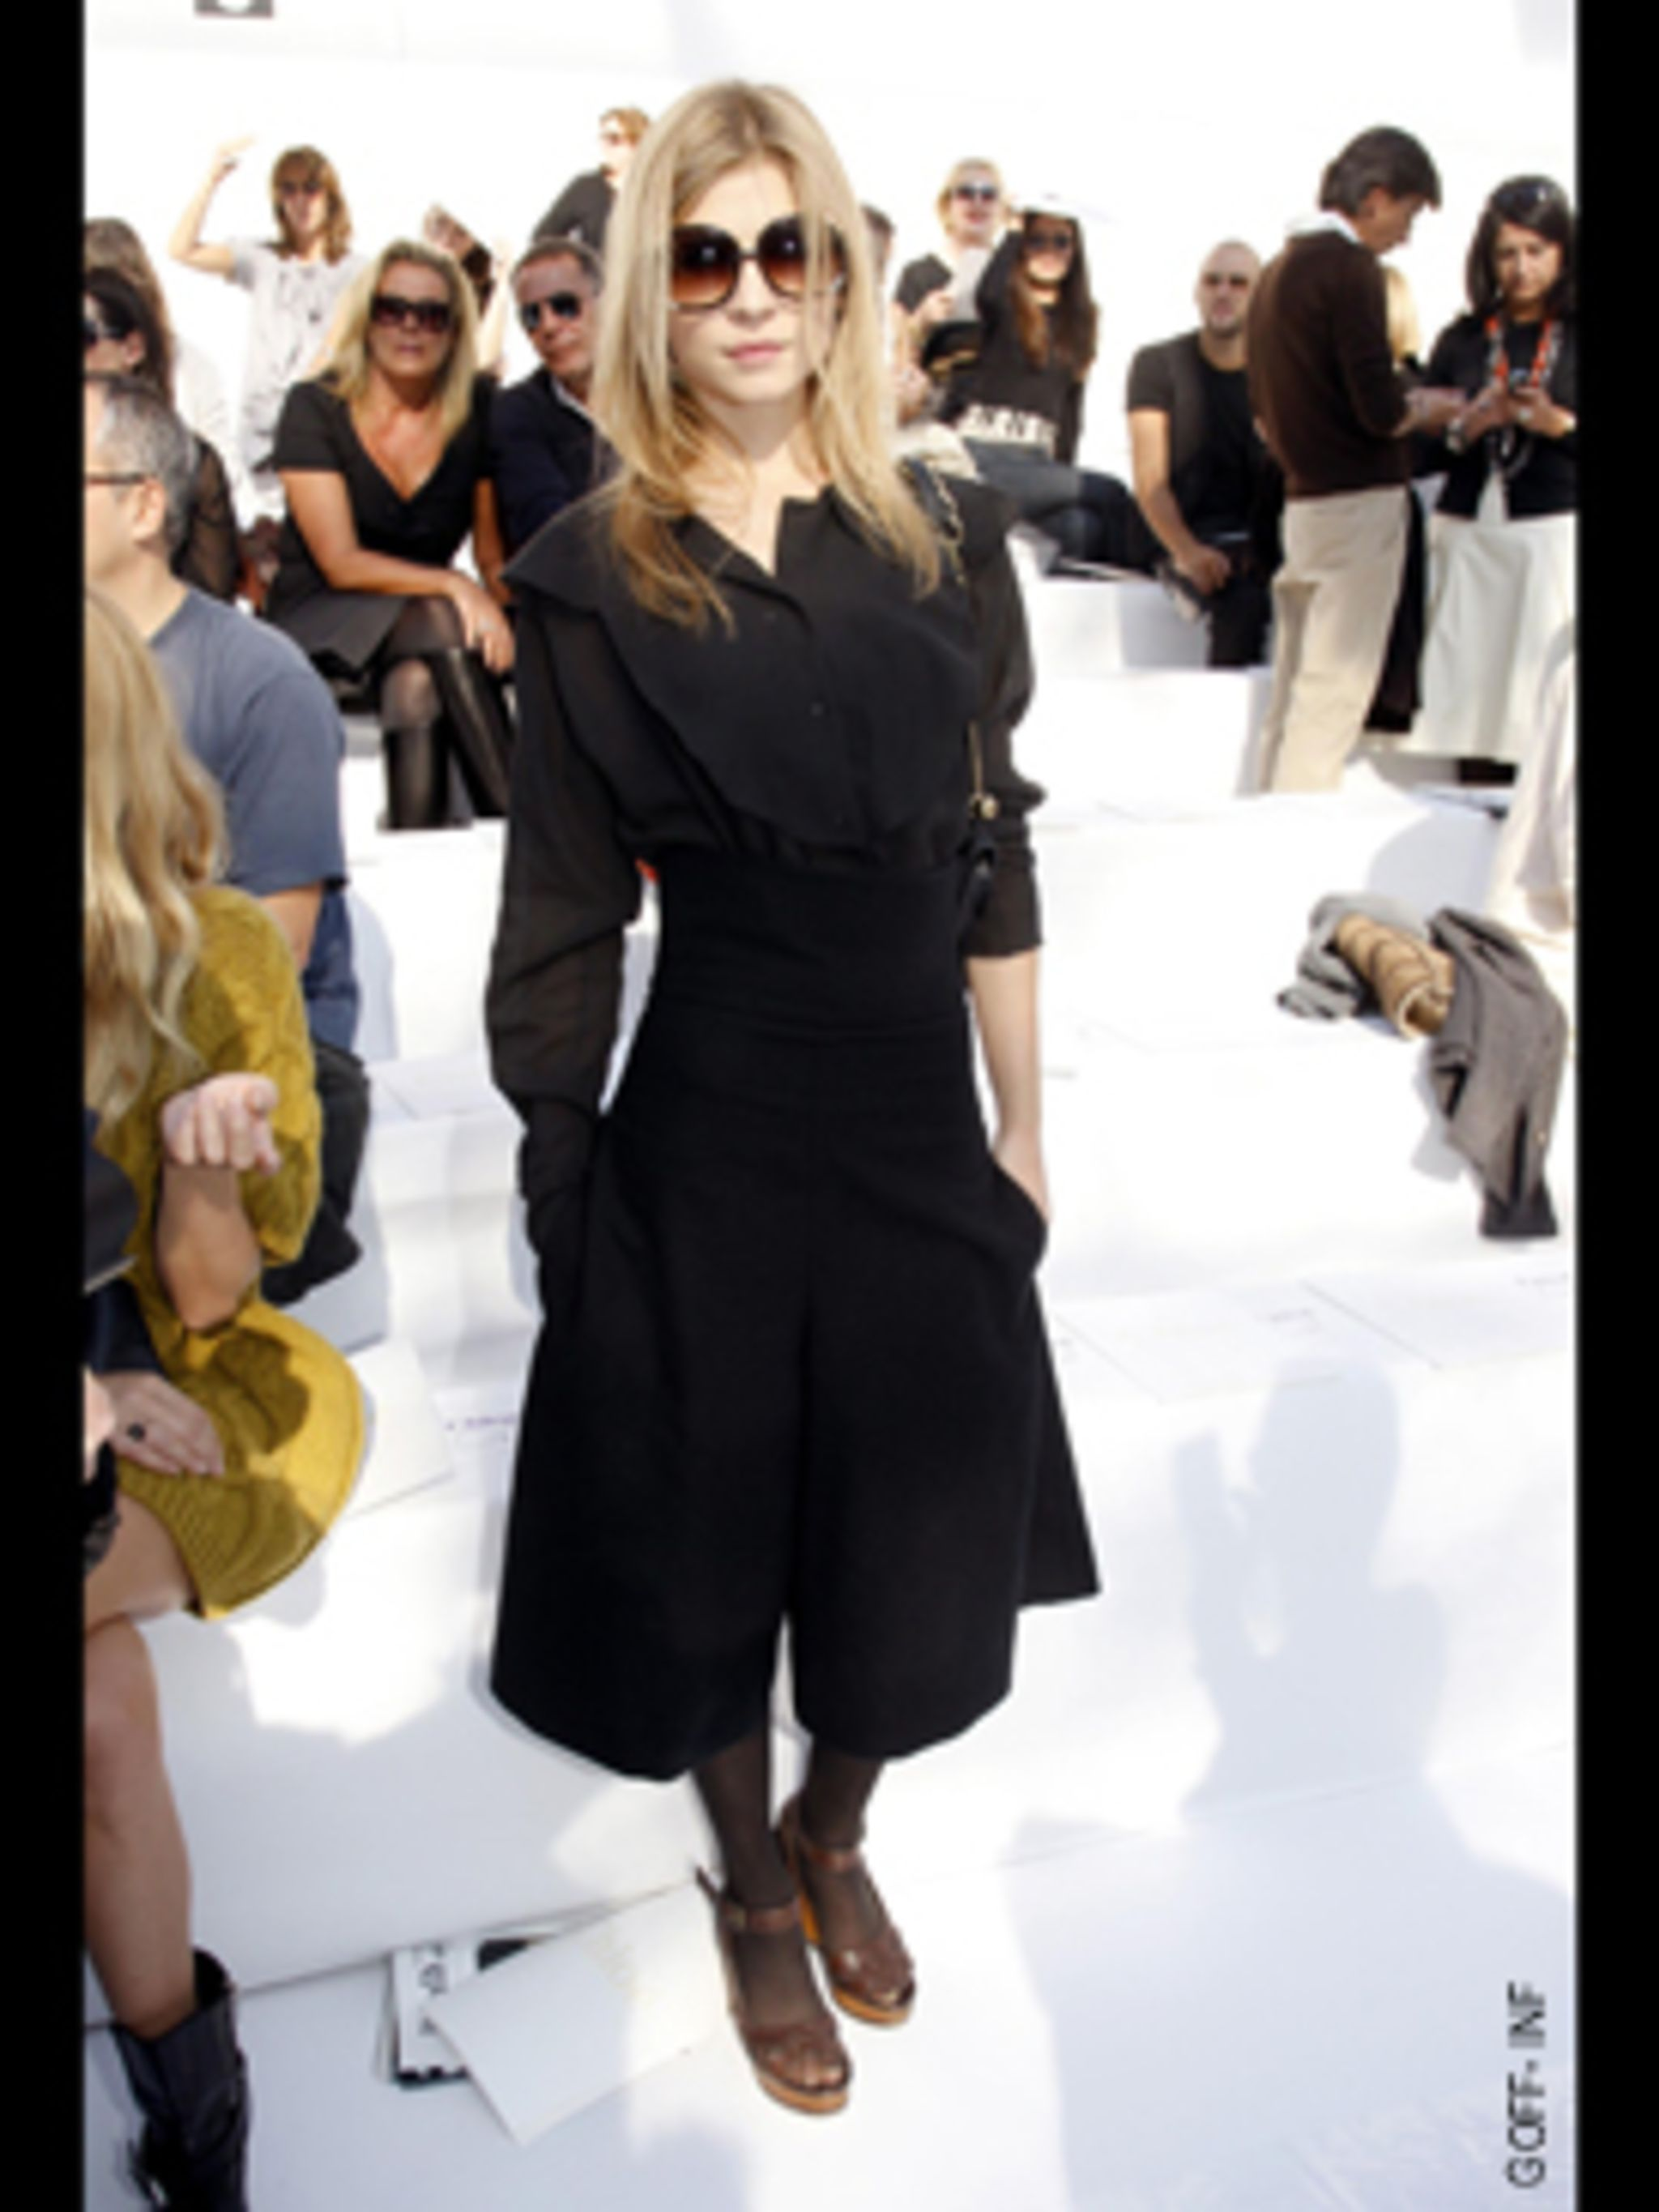 <p>She's the French girl who beat off every young British actress to play Fluer in Harry Potter and the Goblet of Fire. Her next role is to star alongside Anja Rubik and Chloe Sevigny in the ad campaign for design house Chloe's first scent. She's the next